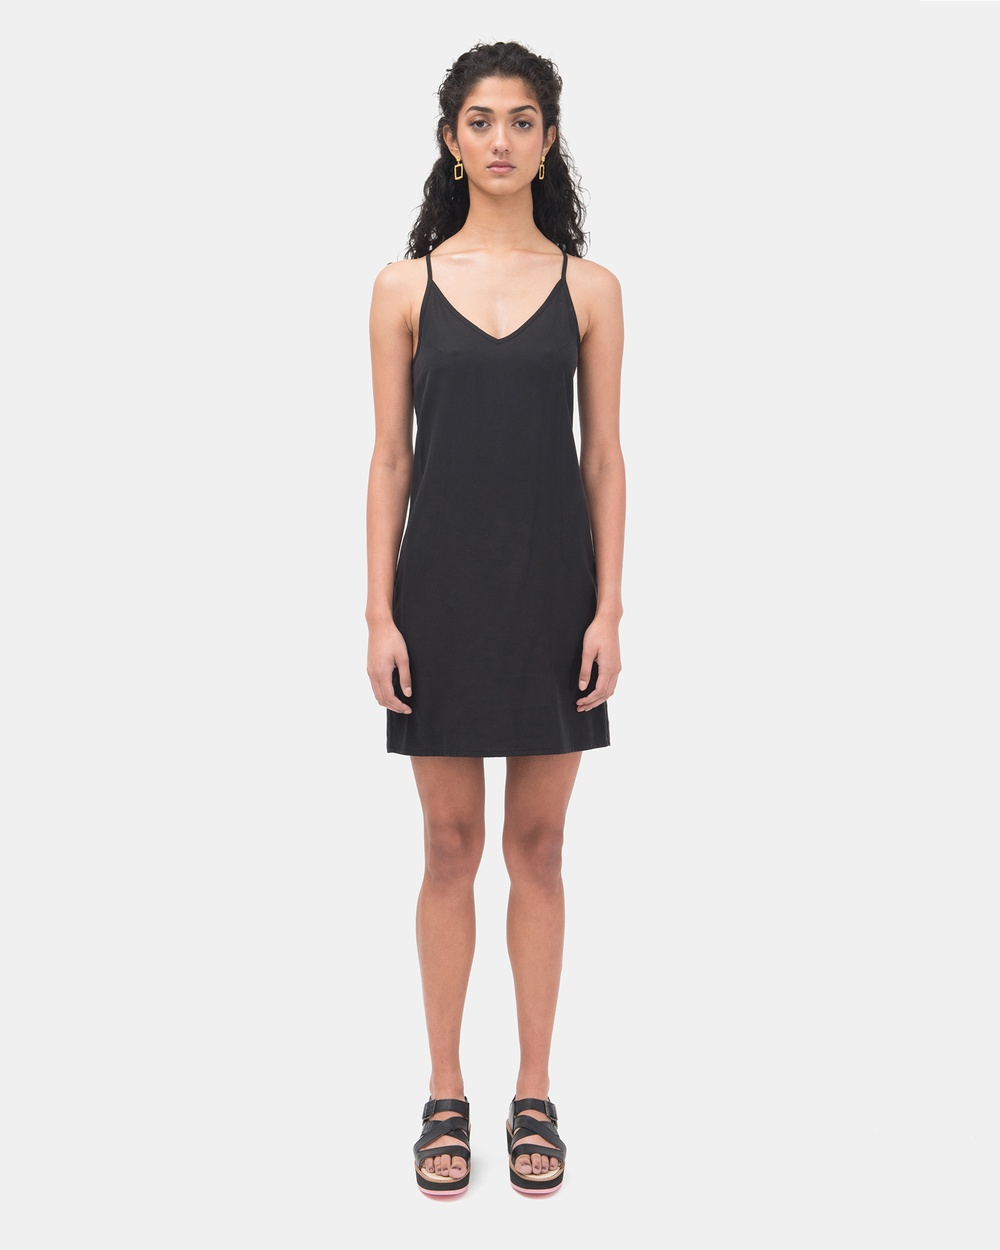 Kuwaii Camisole Slip Dress Dresses Black Camisole Slip Dress